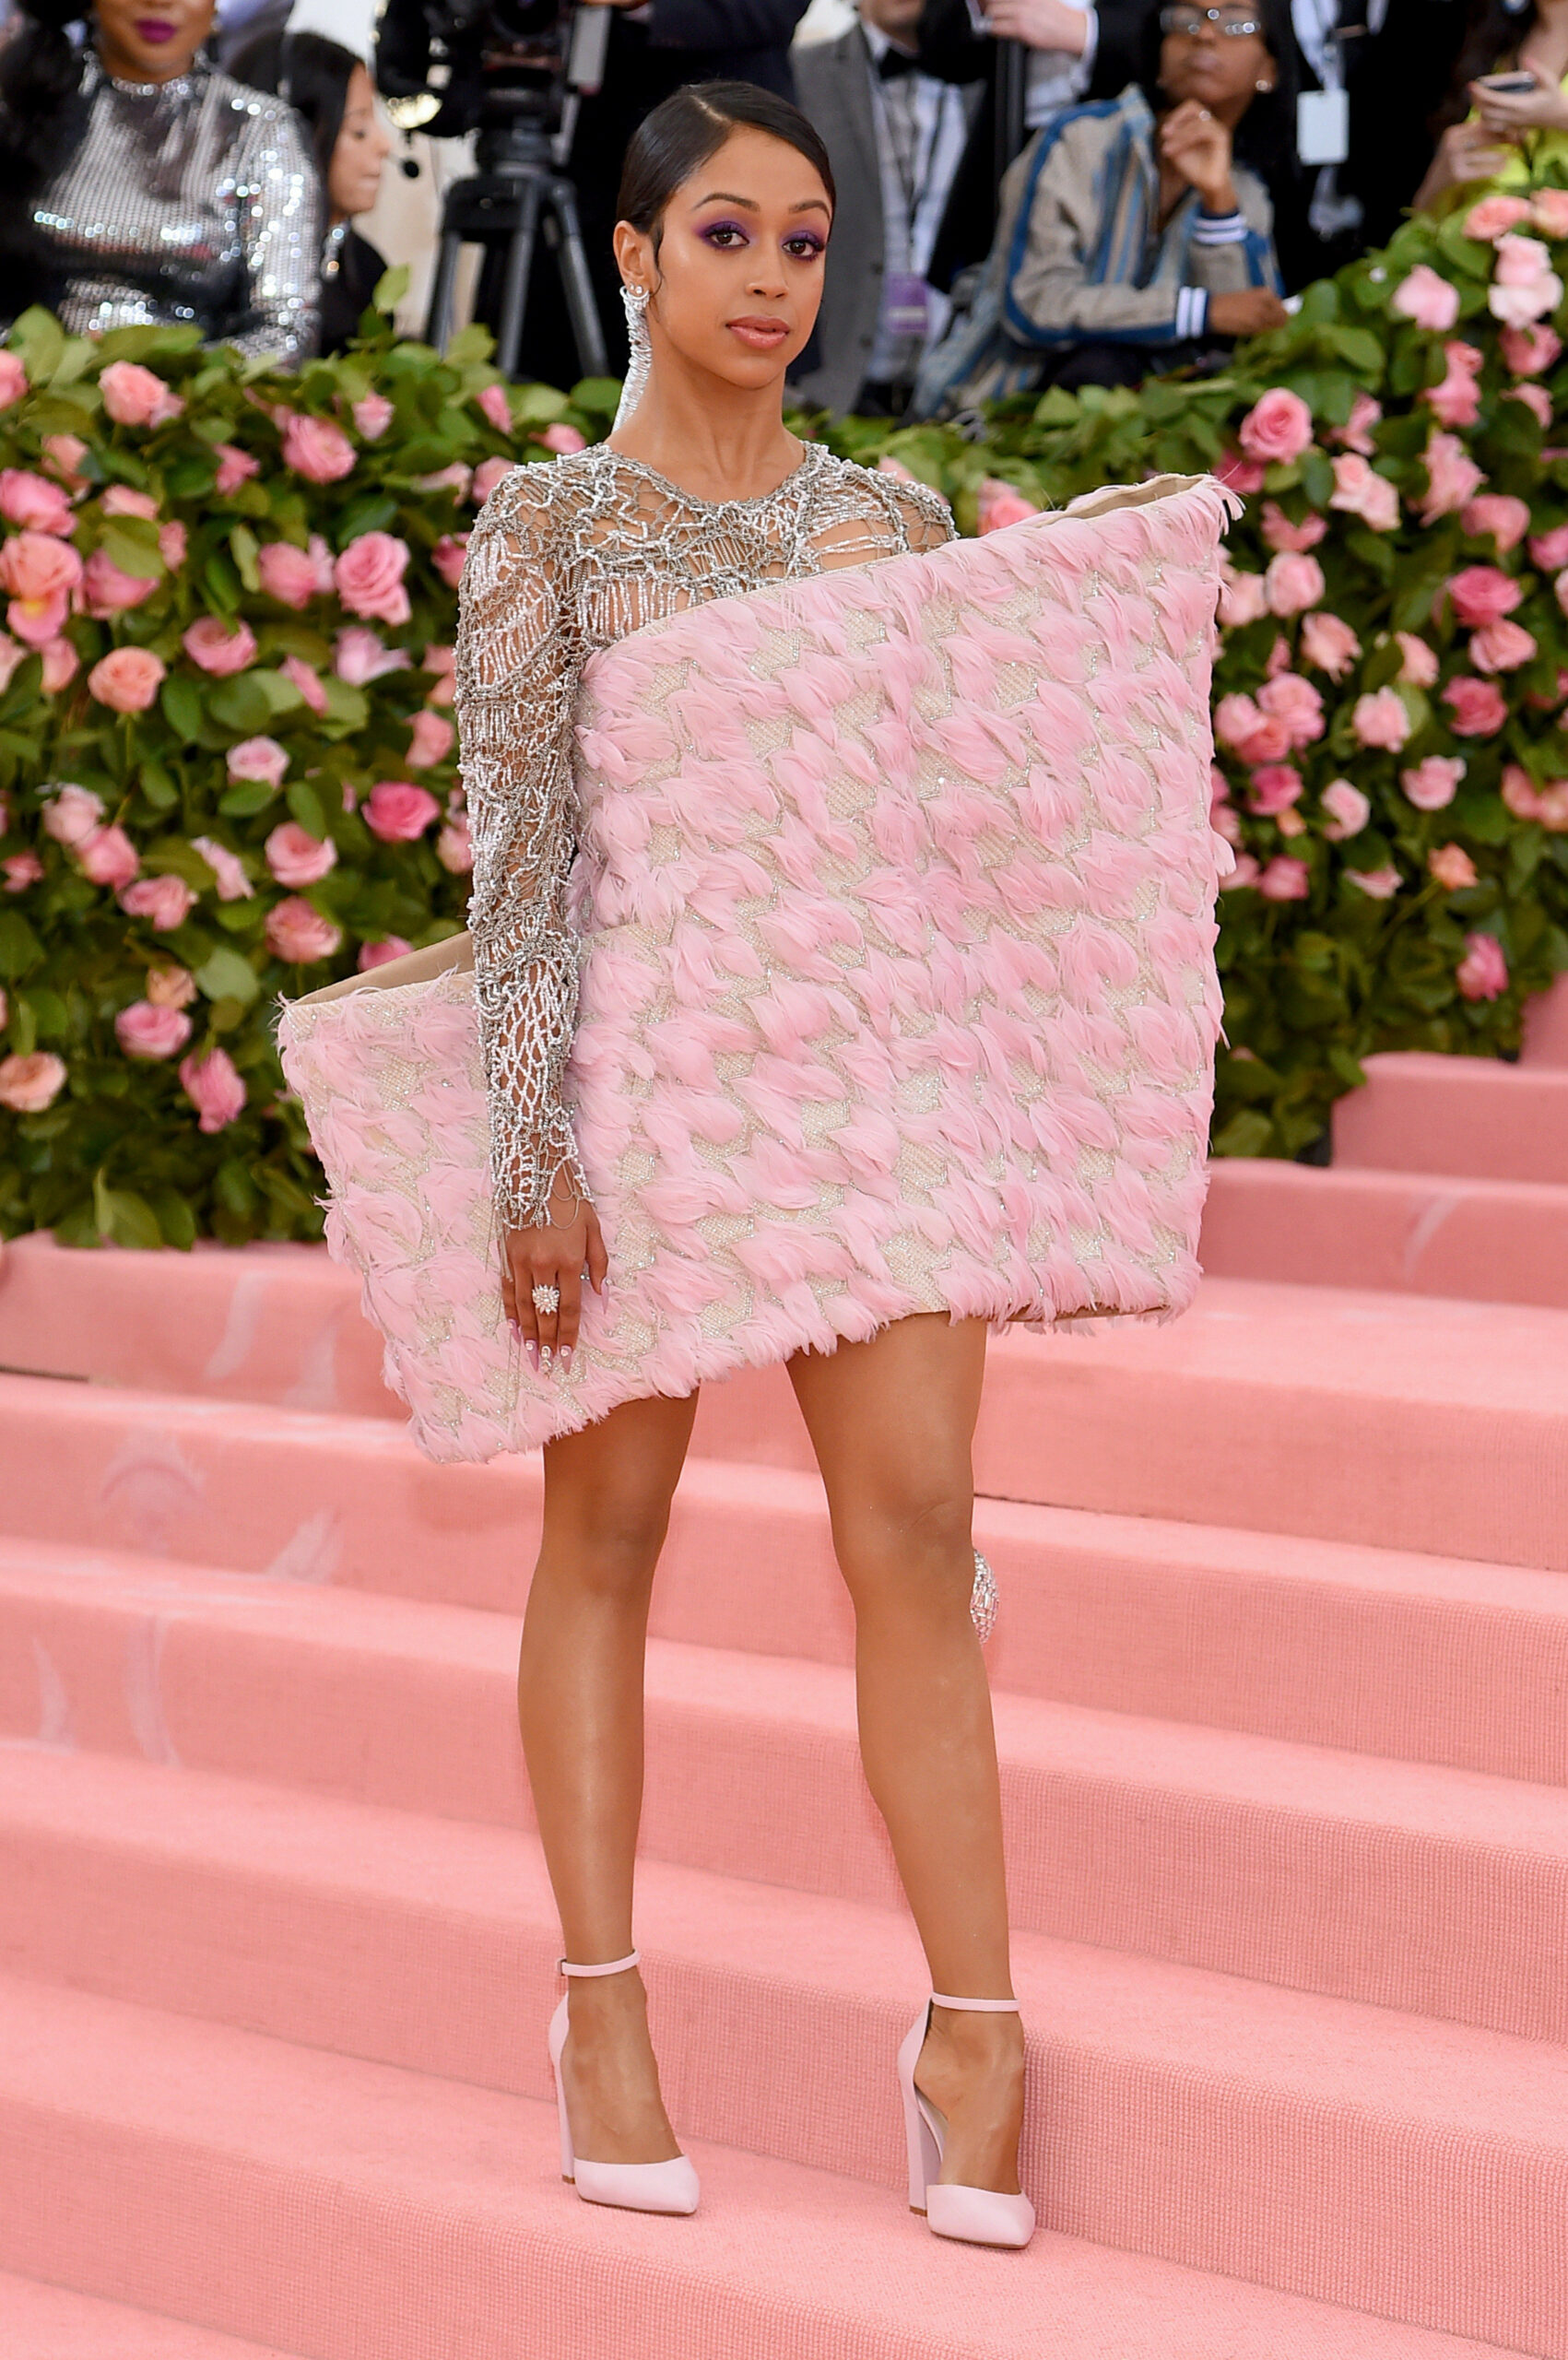 Met Gala 12 Red Carpet: See All the Celebrity Dresses, Outfits